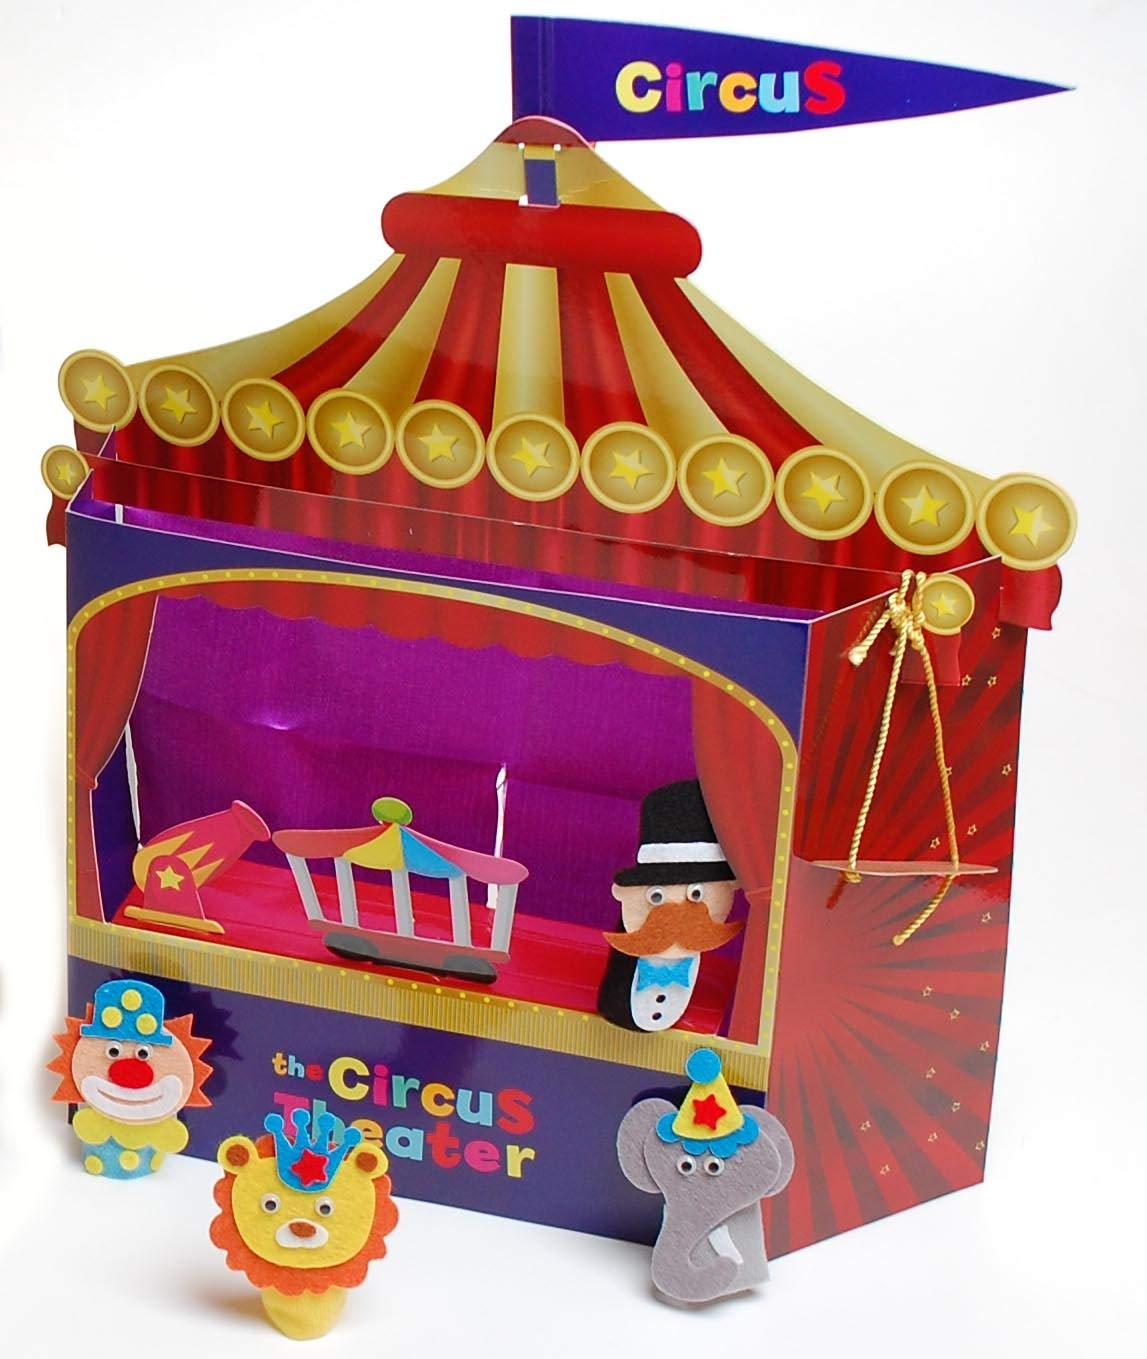 Buy Direct From Us Girls & Boys - Finger Puppet Circus Theatre Incredible Deals